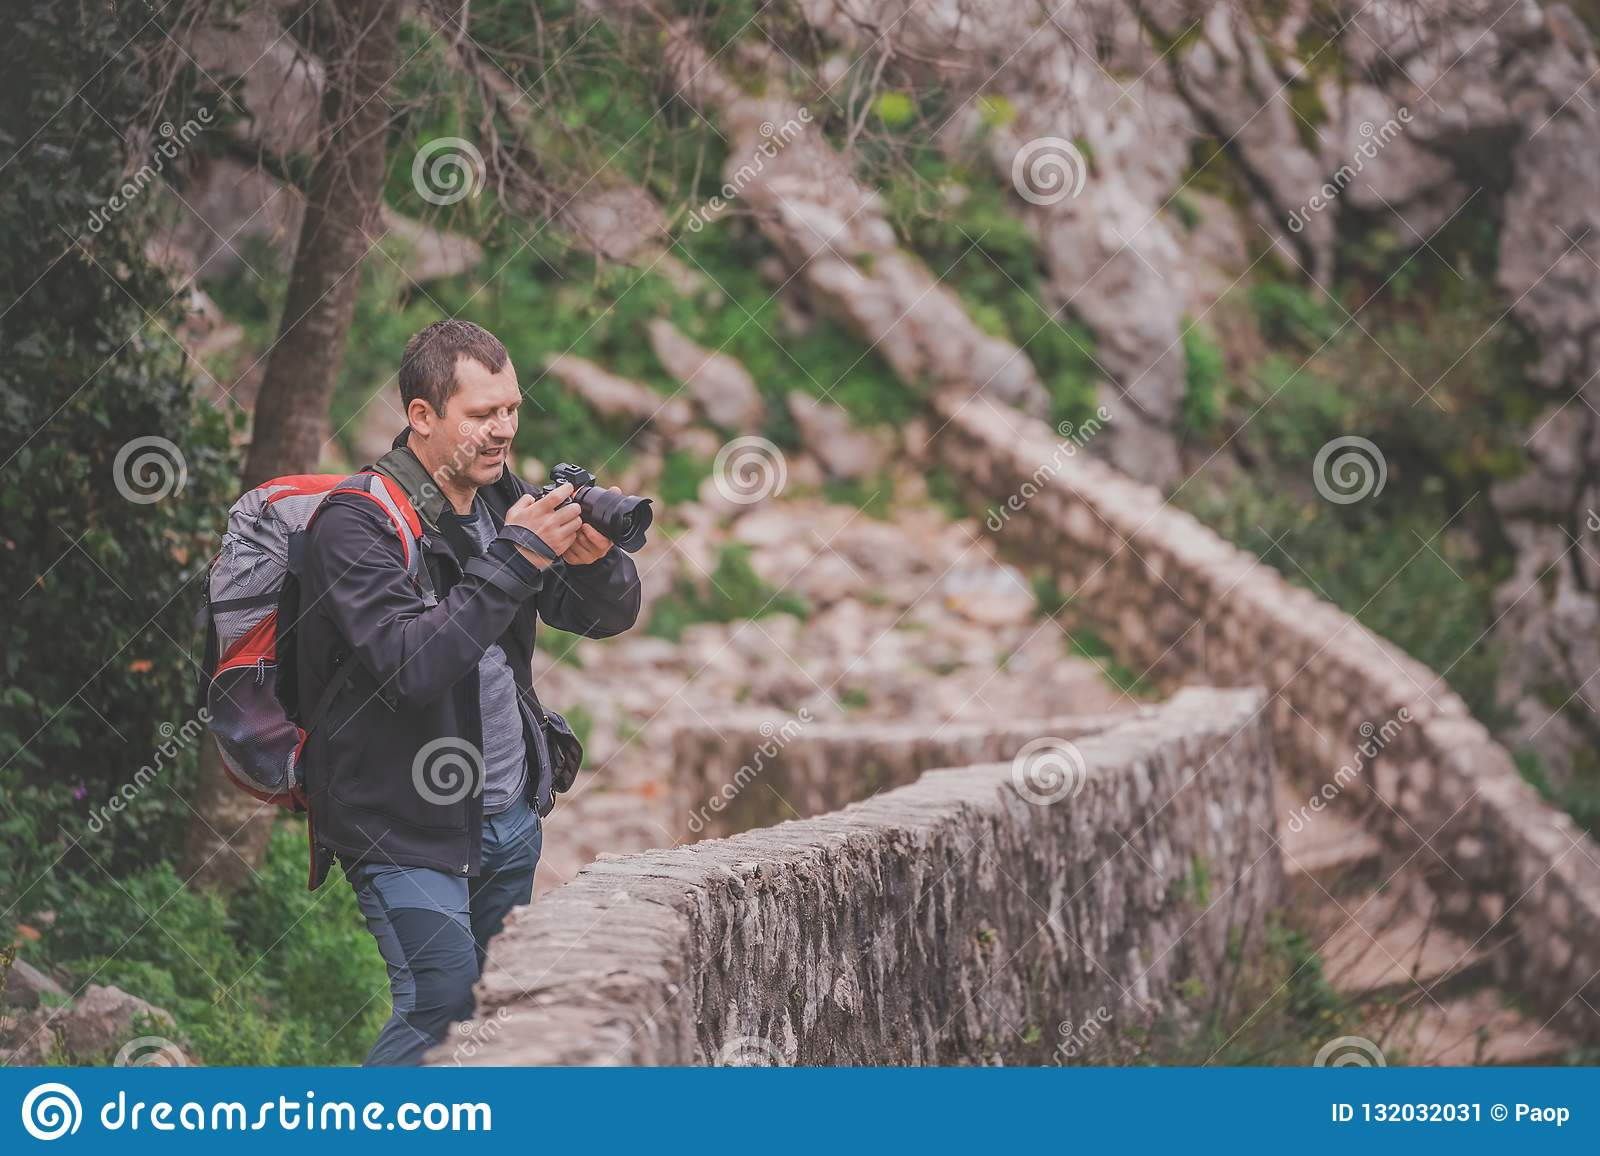 Tourist on a trail checking images on camera